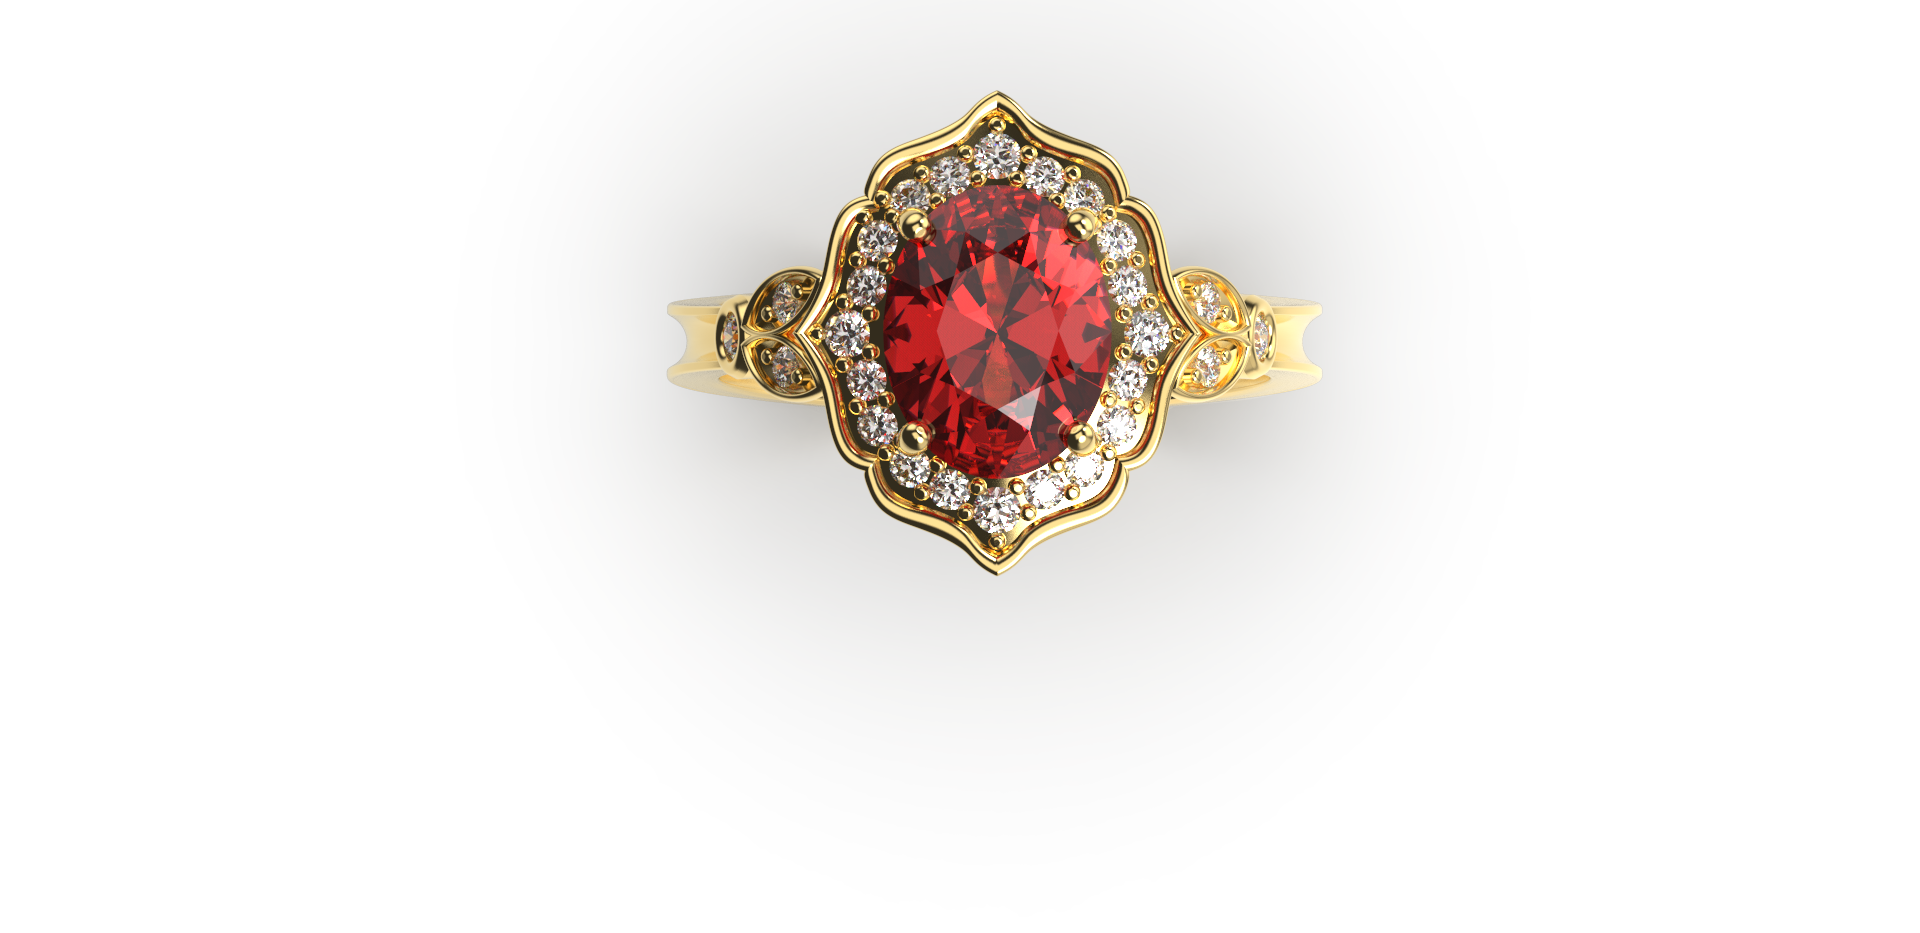 Bruce Trick - Ornate ring top.png